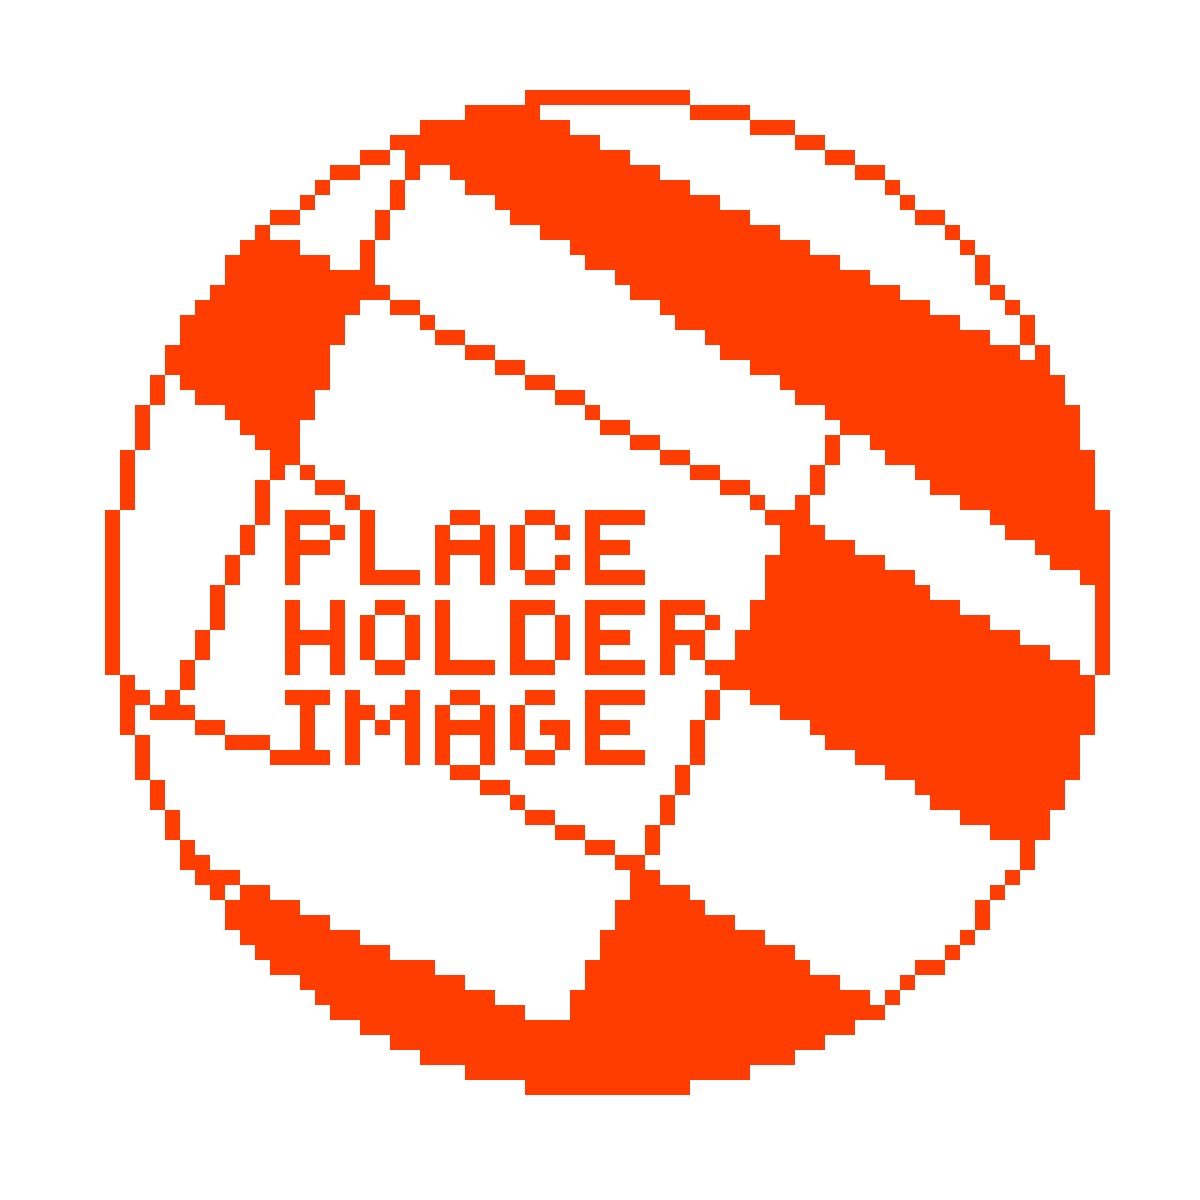 when you too lazy to make art but need an 80 x 80 image by Cryptocratic